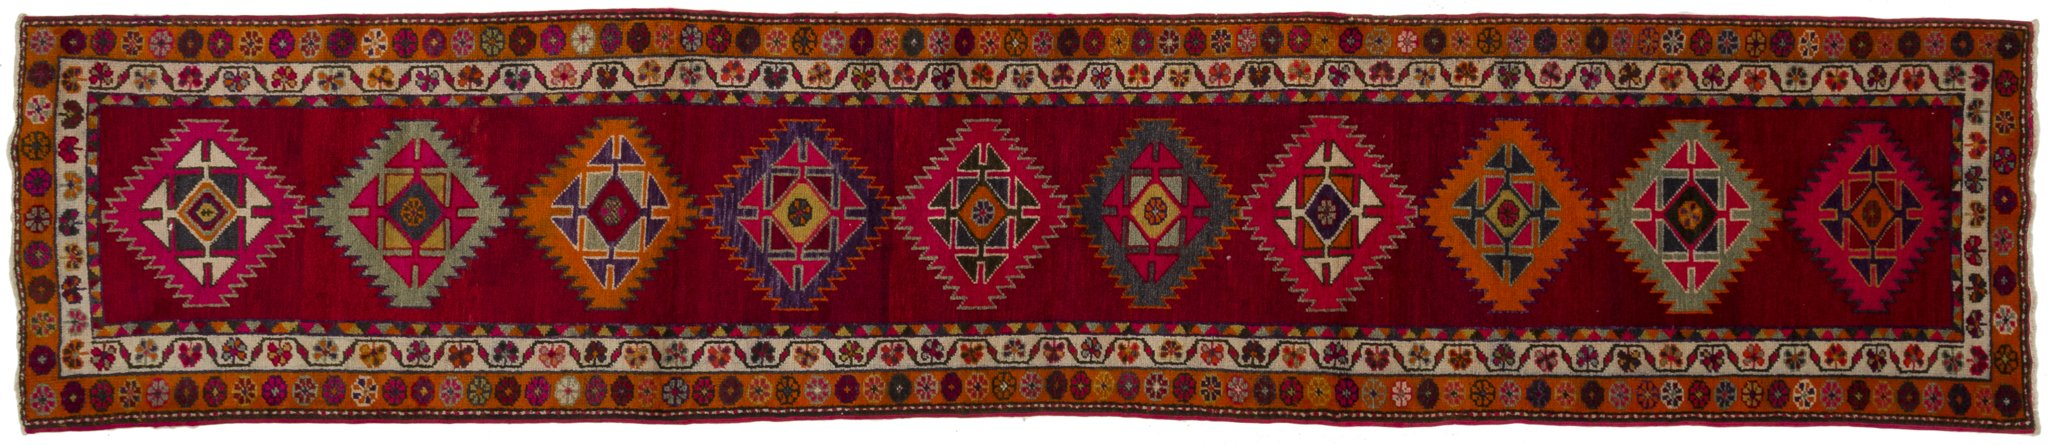 Vintage Turkish Runner Rug Amneris